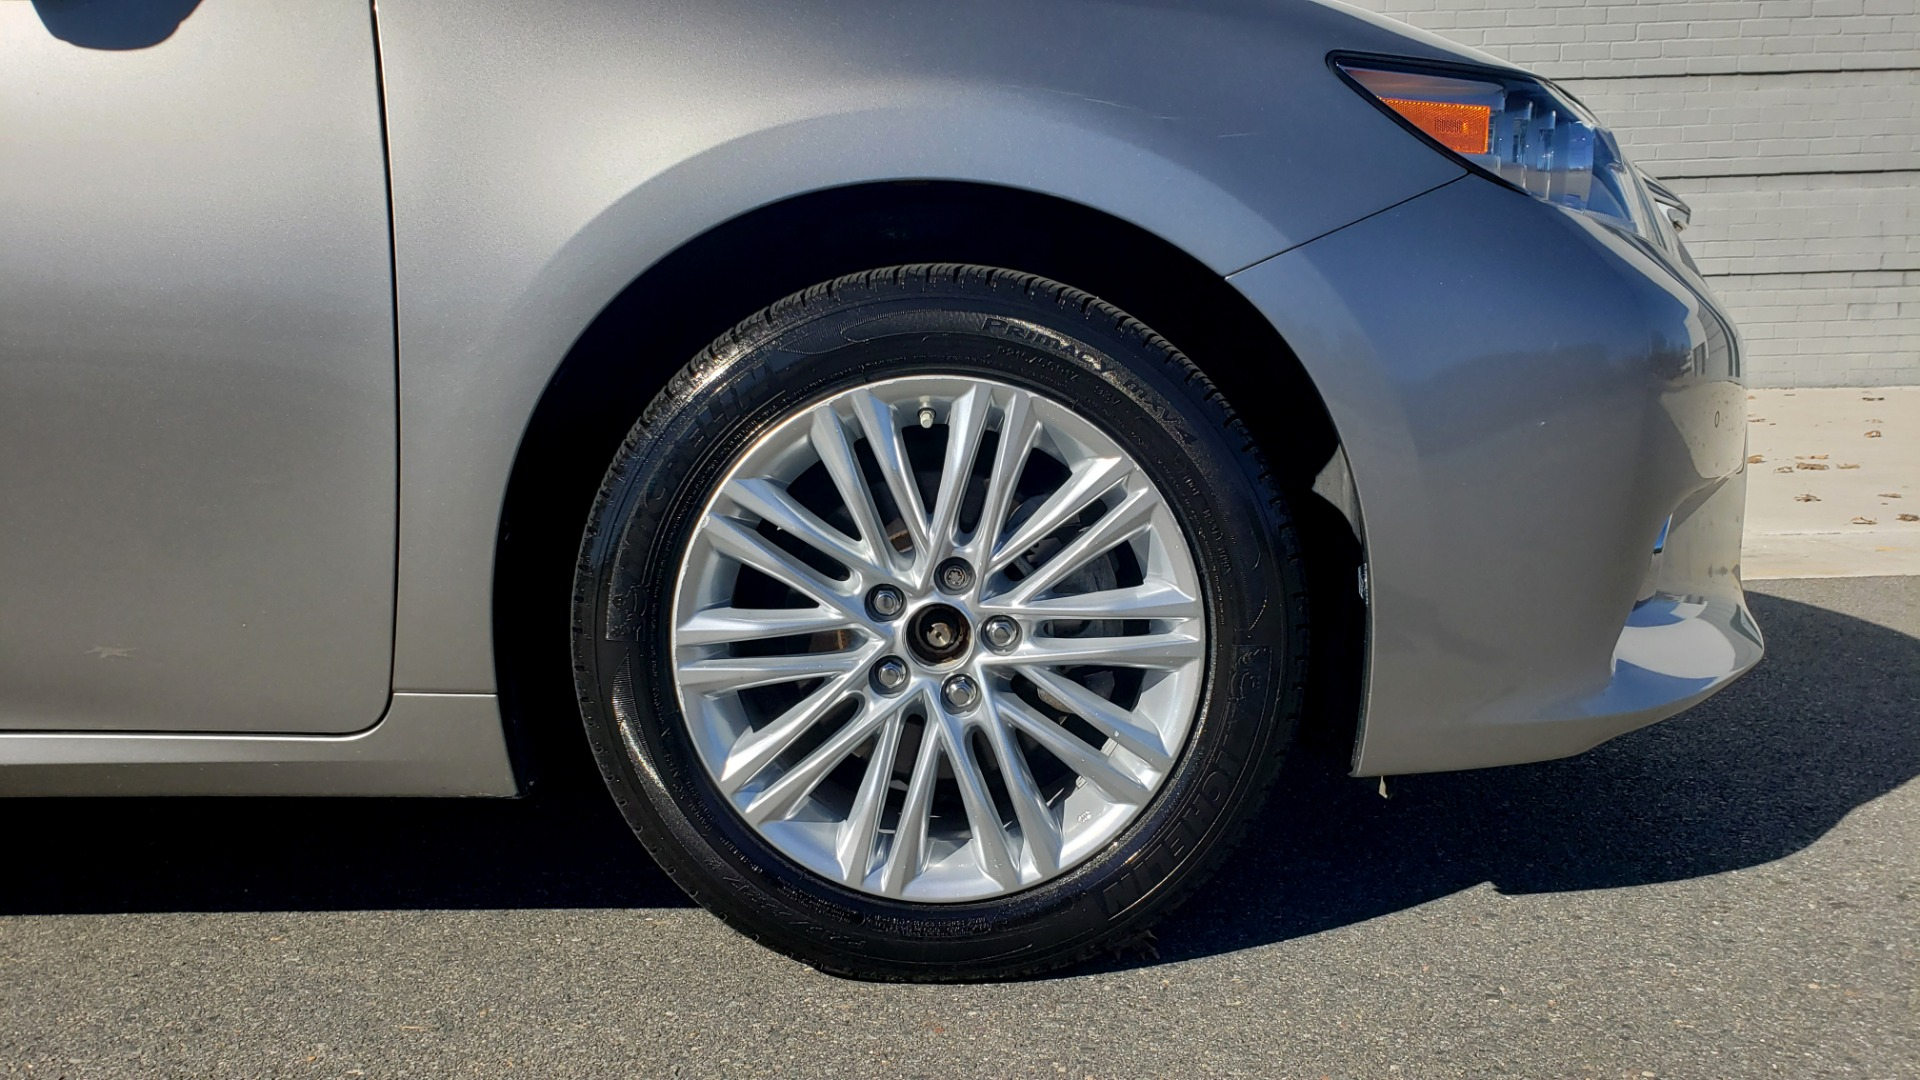 Used 2015 Lexus ES 350 LUXURY PKG / NAV / BSM / LCA / PARK ASSIST / REARVIEW for sale Sold at Formula Imports in Charlotte NC 28227 77